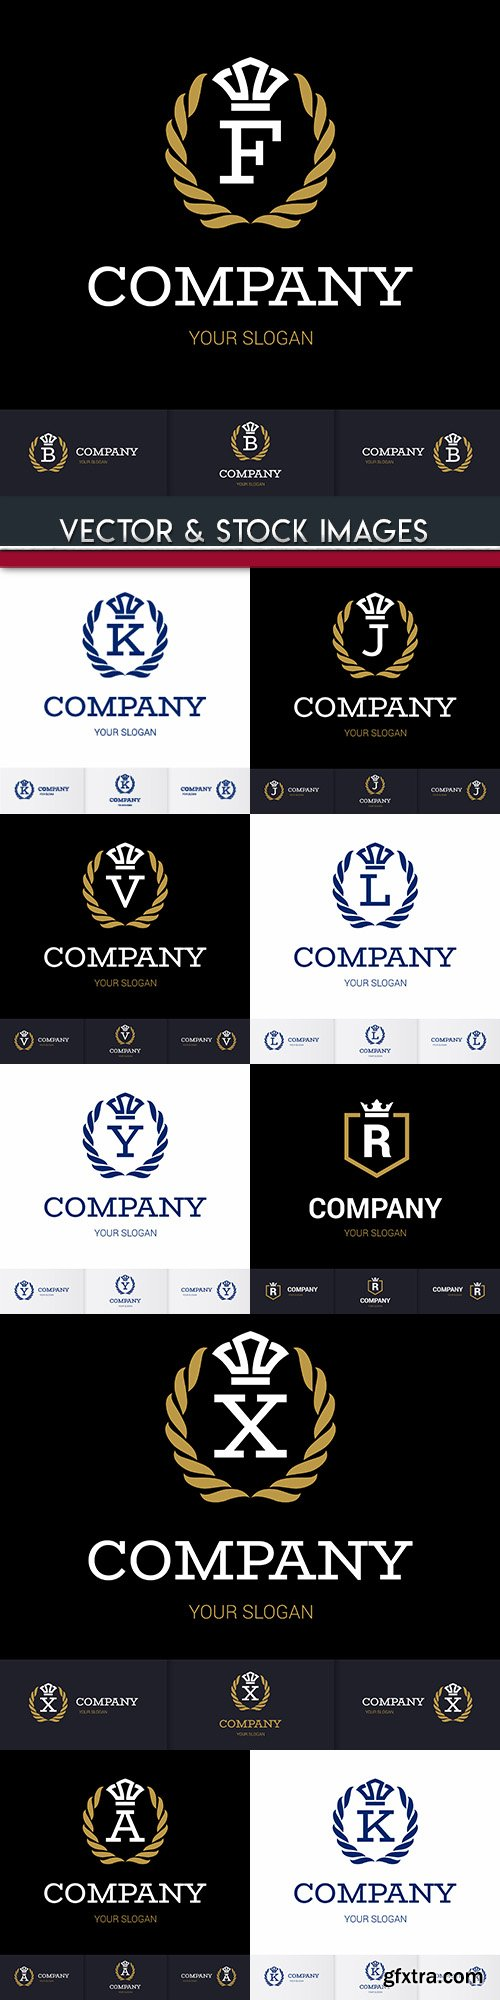 Creative logos corporate company design 30